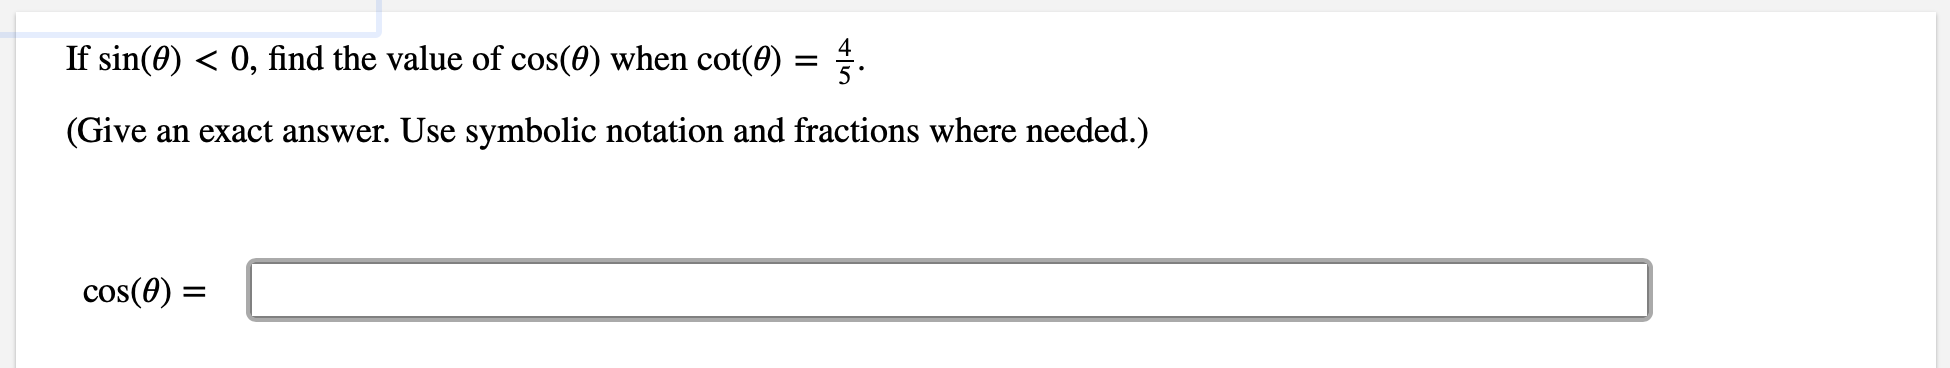 0, find the value of cos(0) when cot(0) = 4. If sin(0) (Give an exact answer. Use symbolic notation and fractions where needed.) cos(0)